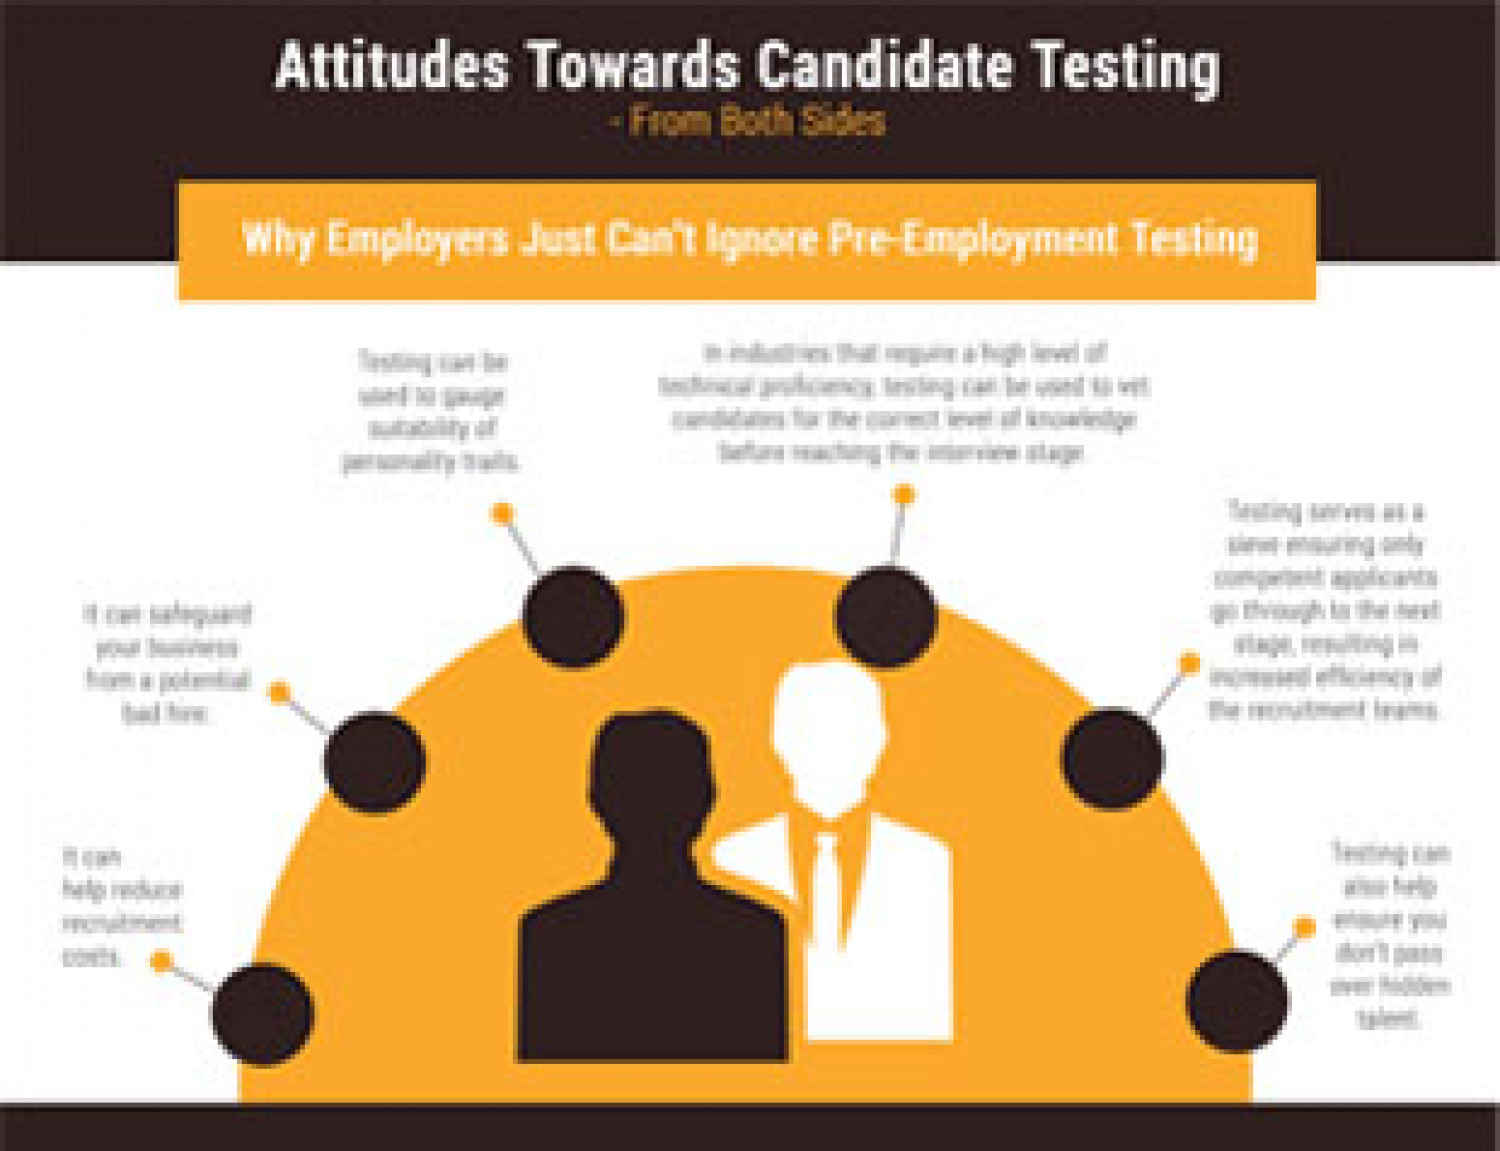 Attitudes Towards Candidate Testing Infographic